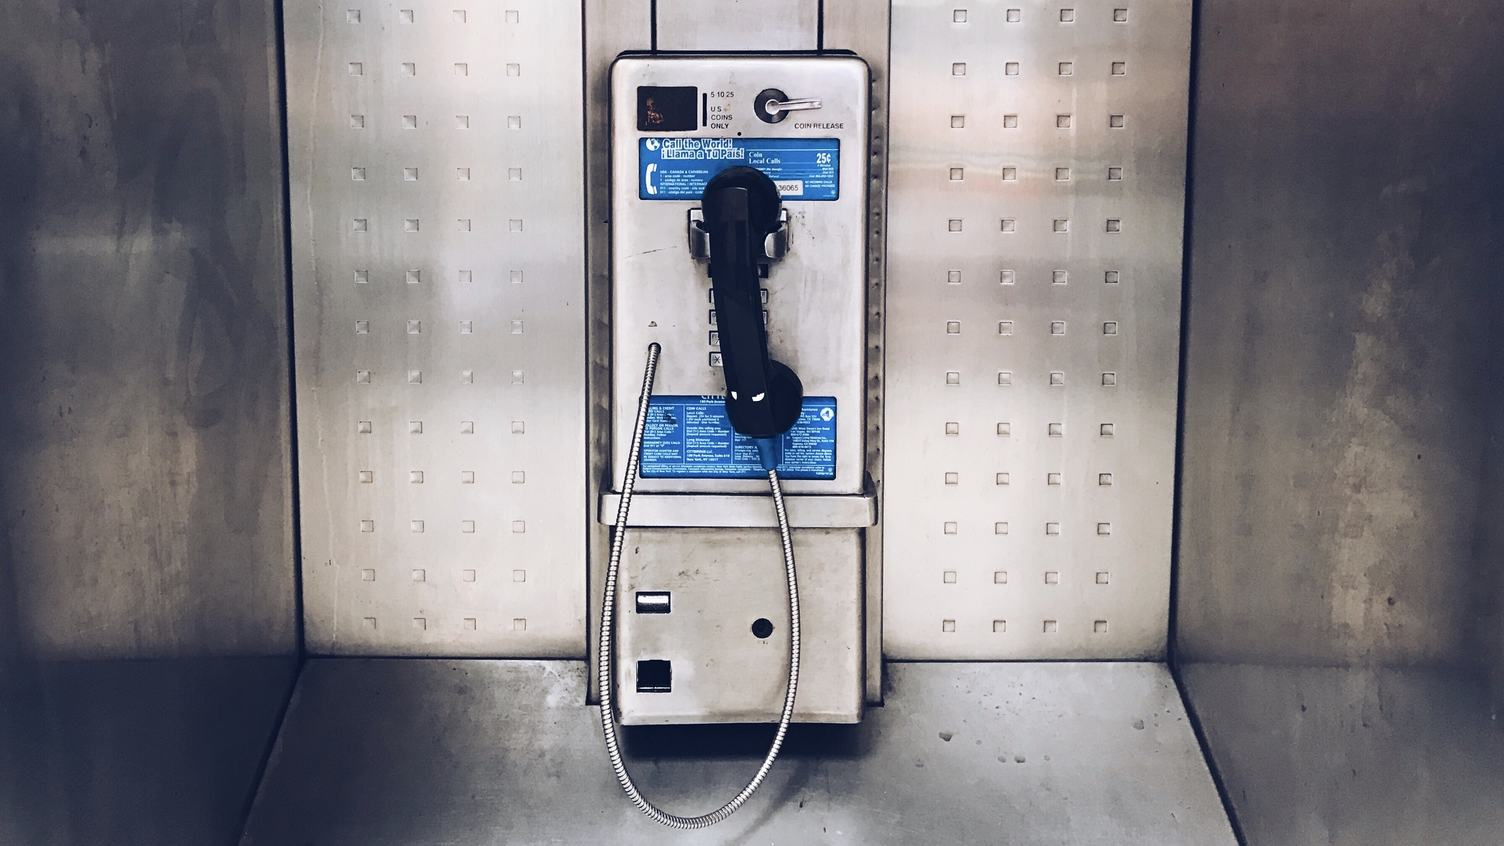 Metal Urban Public Phone Booth with Black Handset